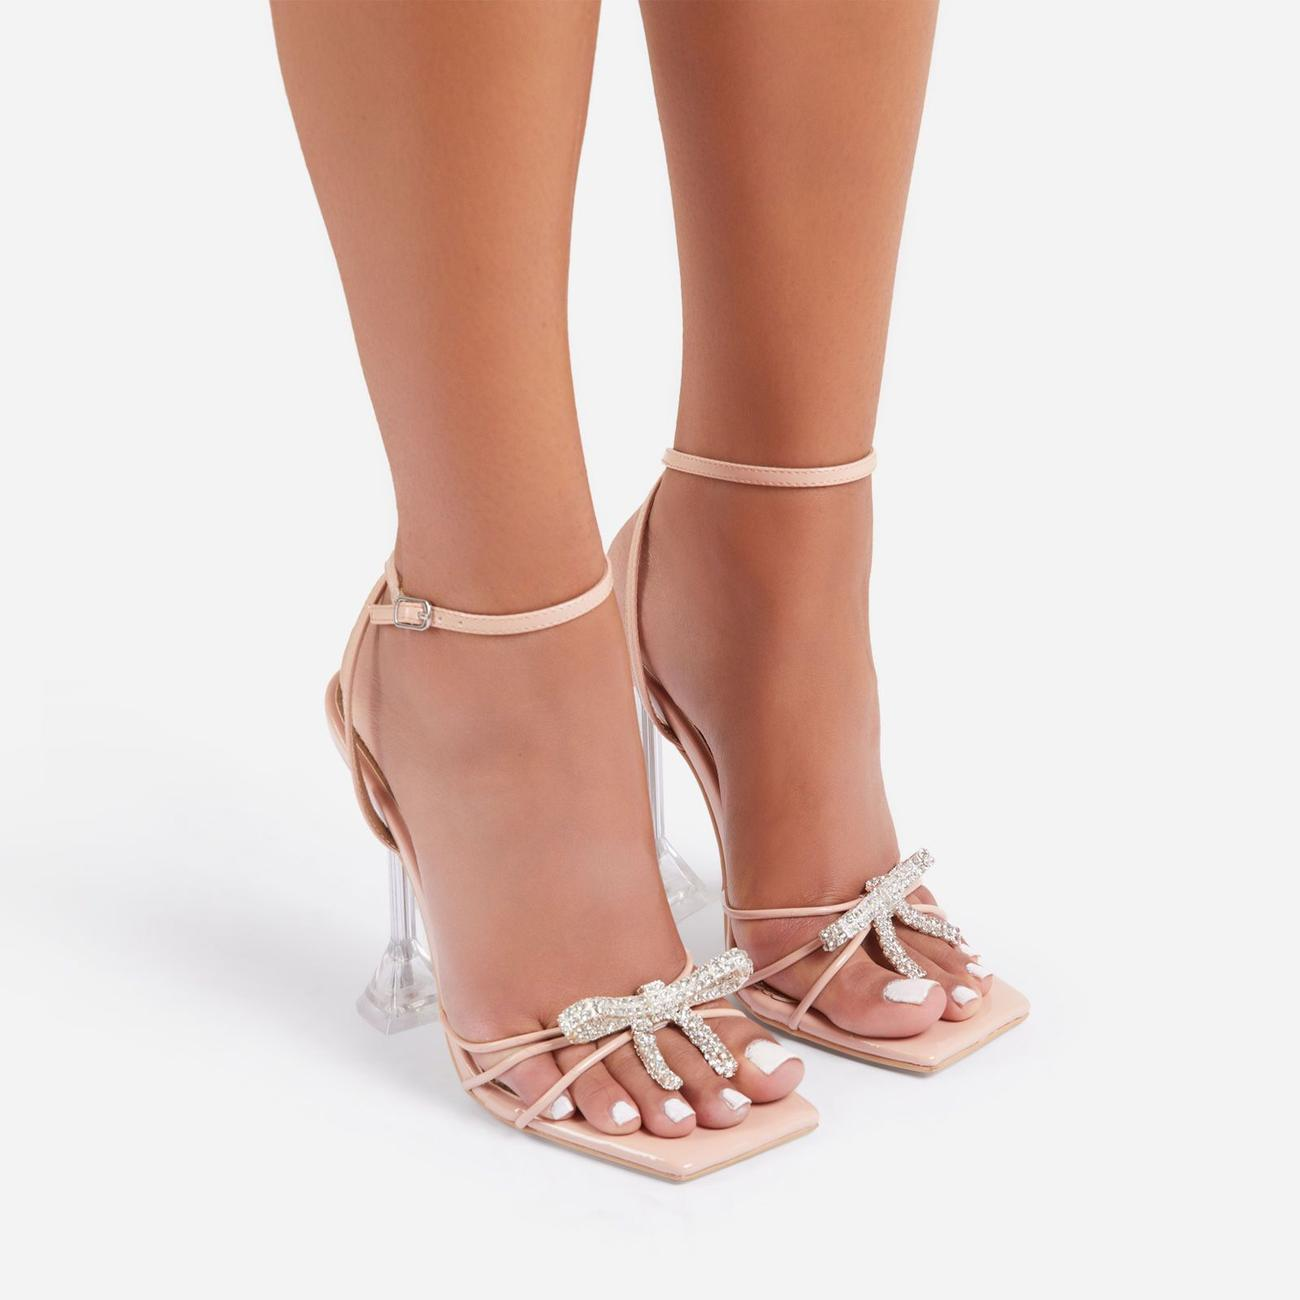 Razz Diamante Bow Detail Square Toe Clear Perspex Pyramid Heel In Nude Patent Image 4